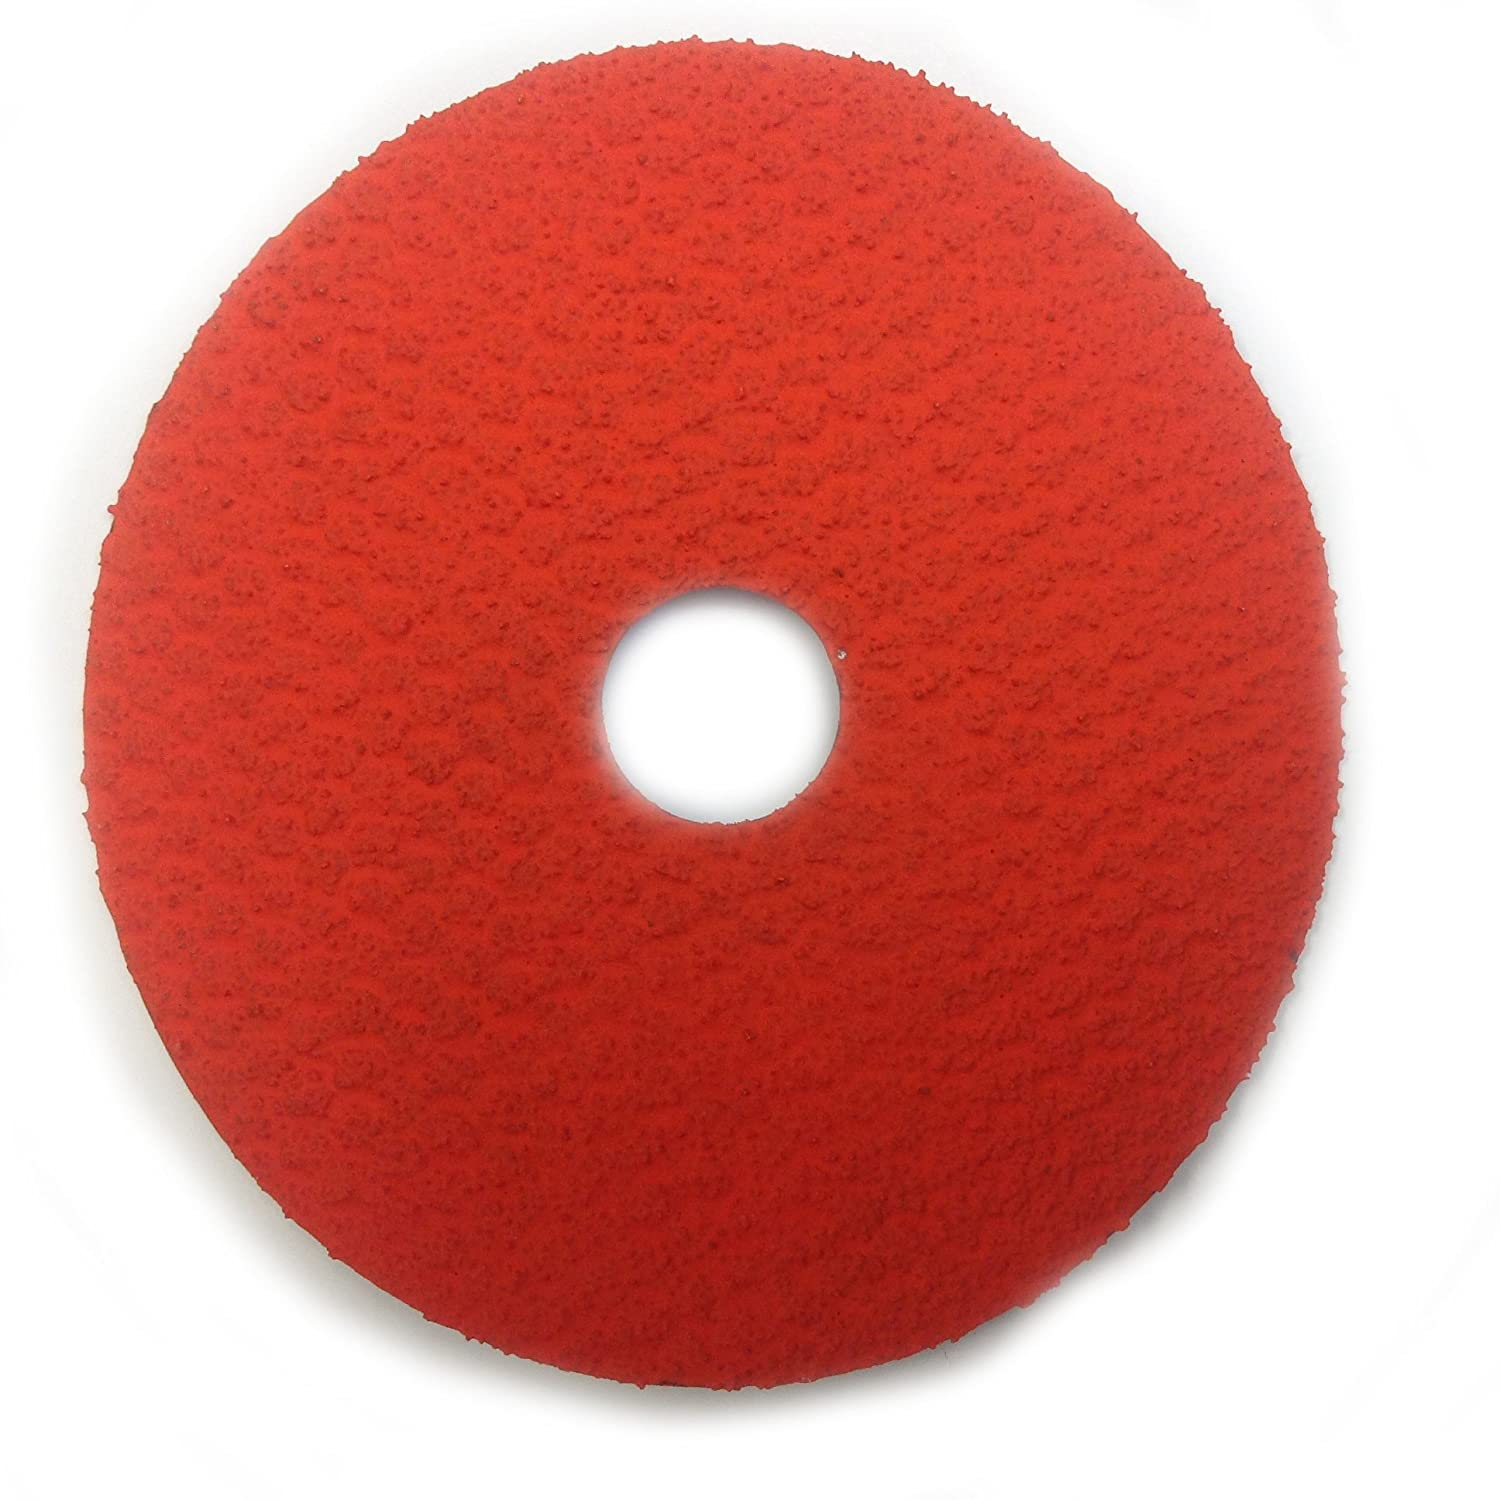 Sungold Abrasives 17264 Center Hole 50 Grit Excella Orange Ceramic Fibre Disc (25 Pack), 4-1/2' x 7/8' 4-1/2 x 7/8